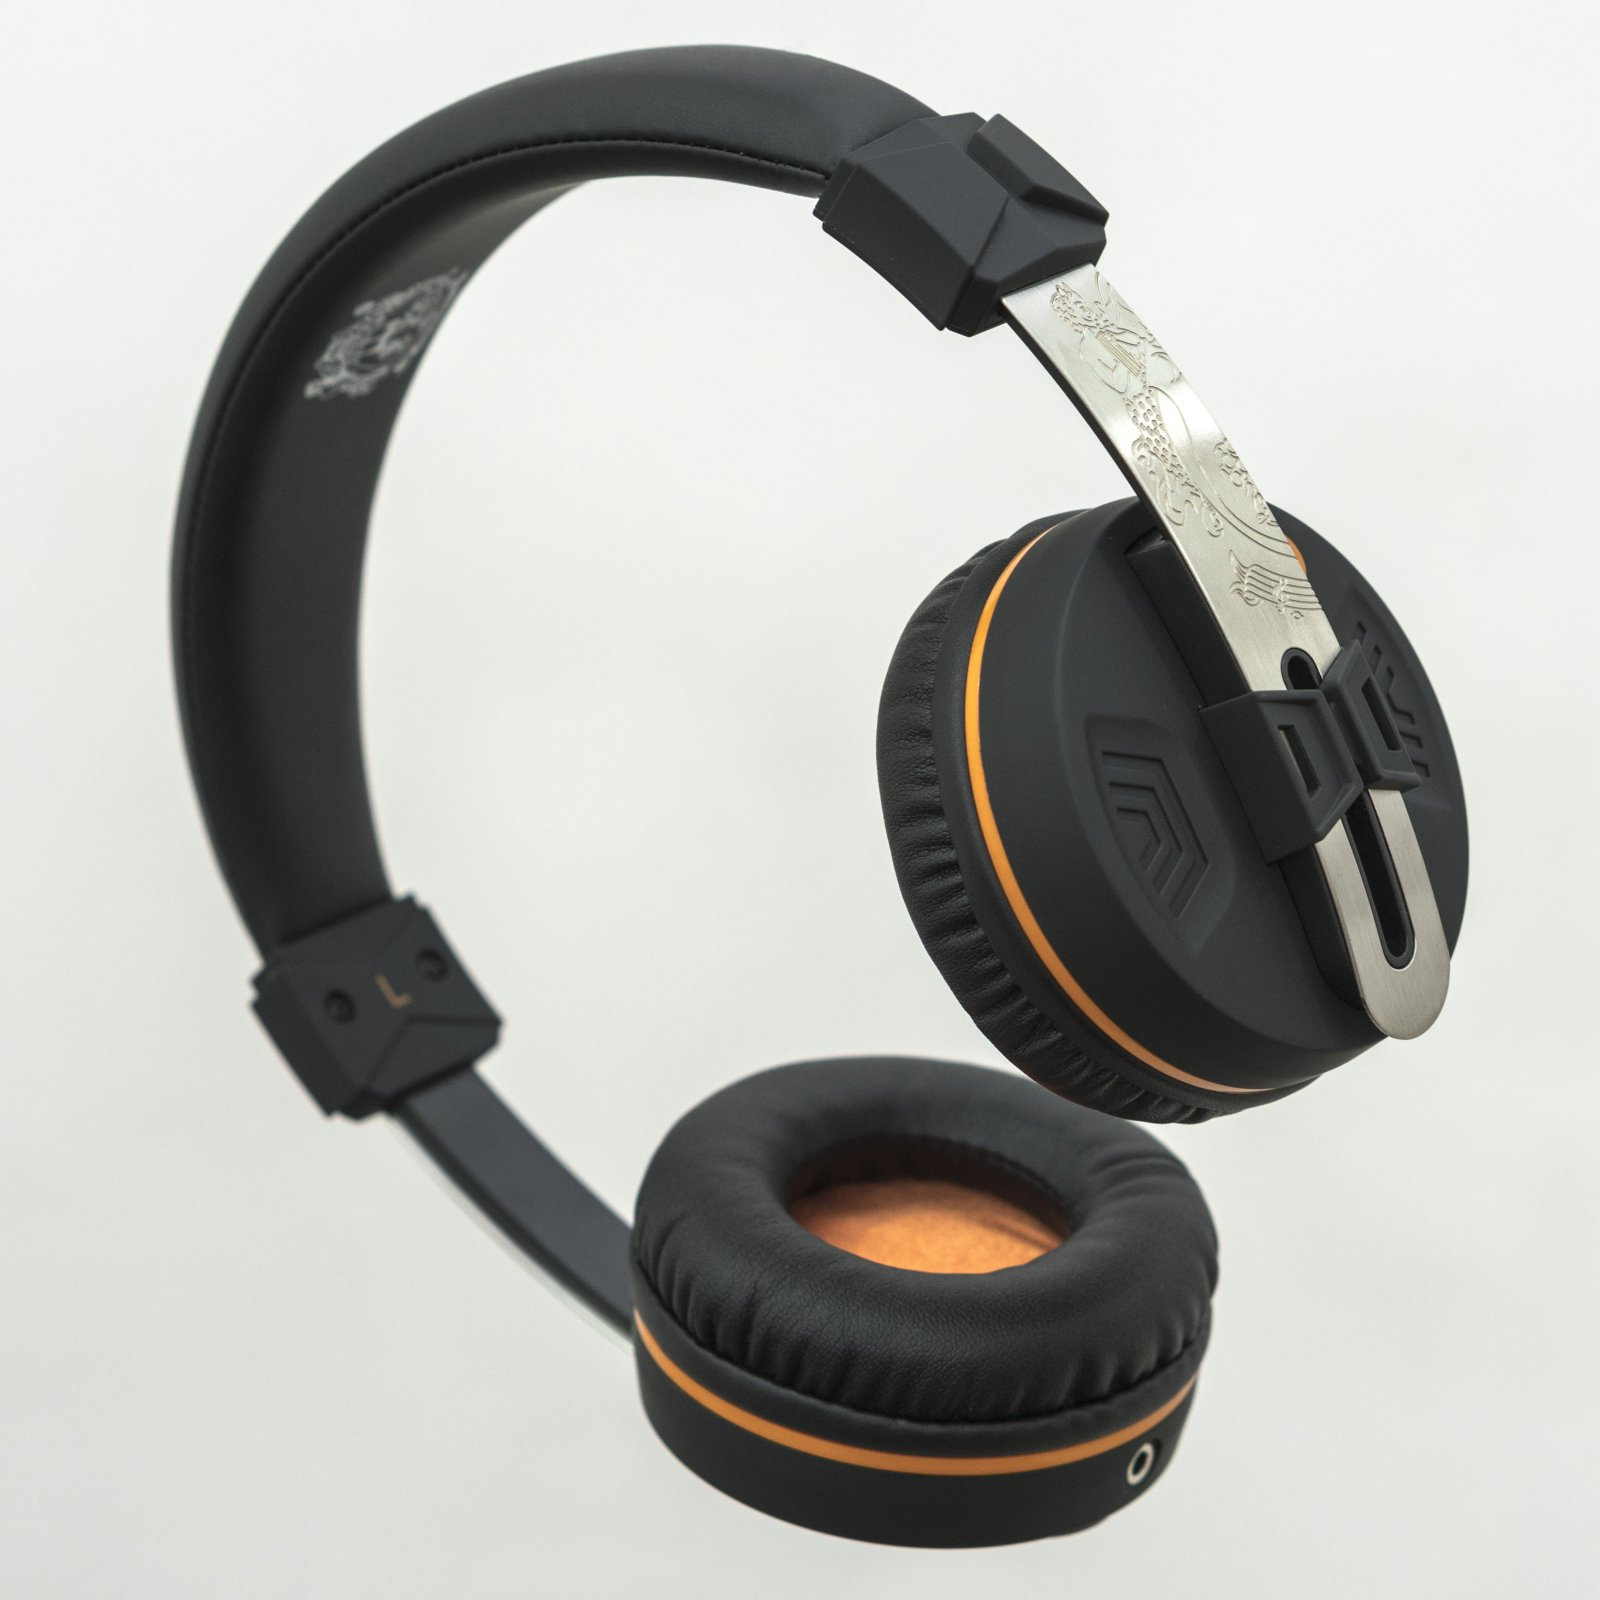 Orange O-EDITION - Headphones 40mm drivers compatible w/ smartphones two detachable 3.5mm jack cables one with mic and control